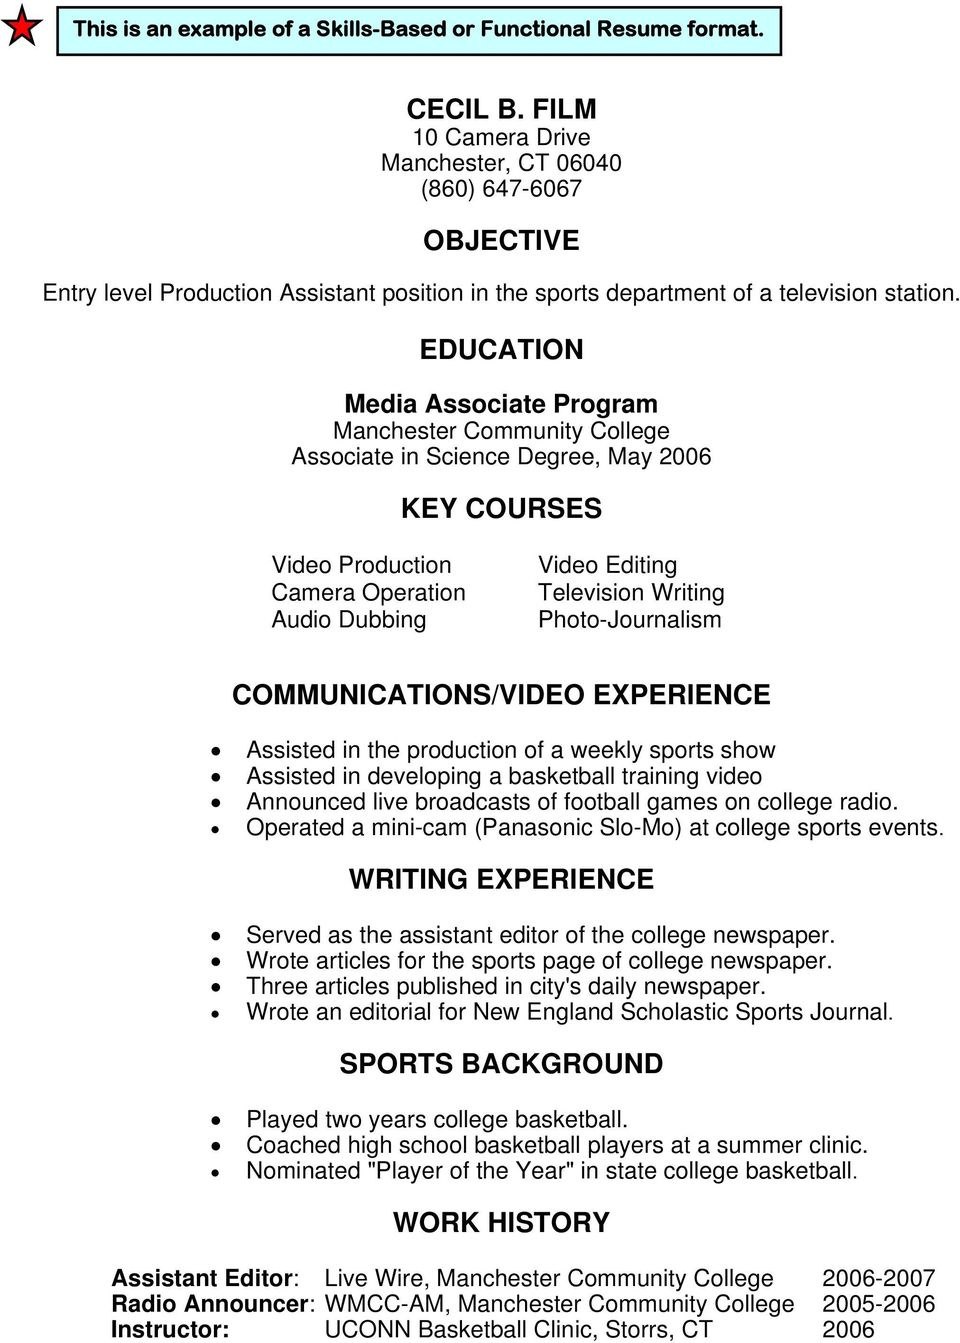 Media Associate Program Associate in Science Degree, May 2006 KEY COURSES Video Production Camera Operation Audio Dubbing Video Editing Television Writing Photo-Journalism COMMUNICATIONS/VIDEO